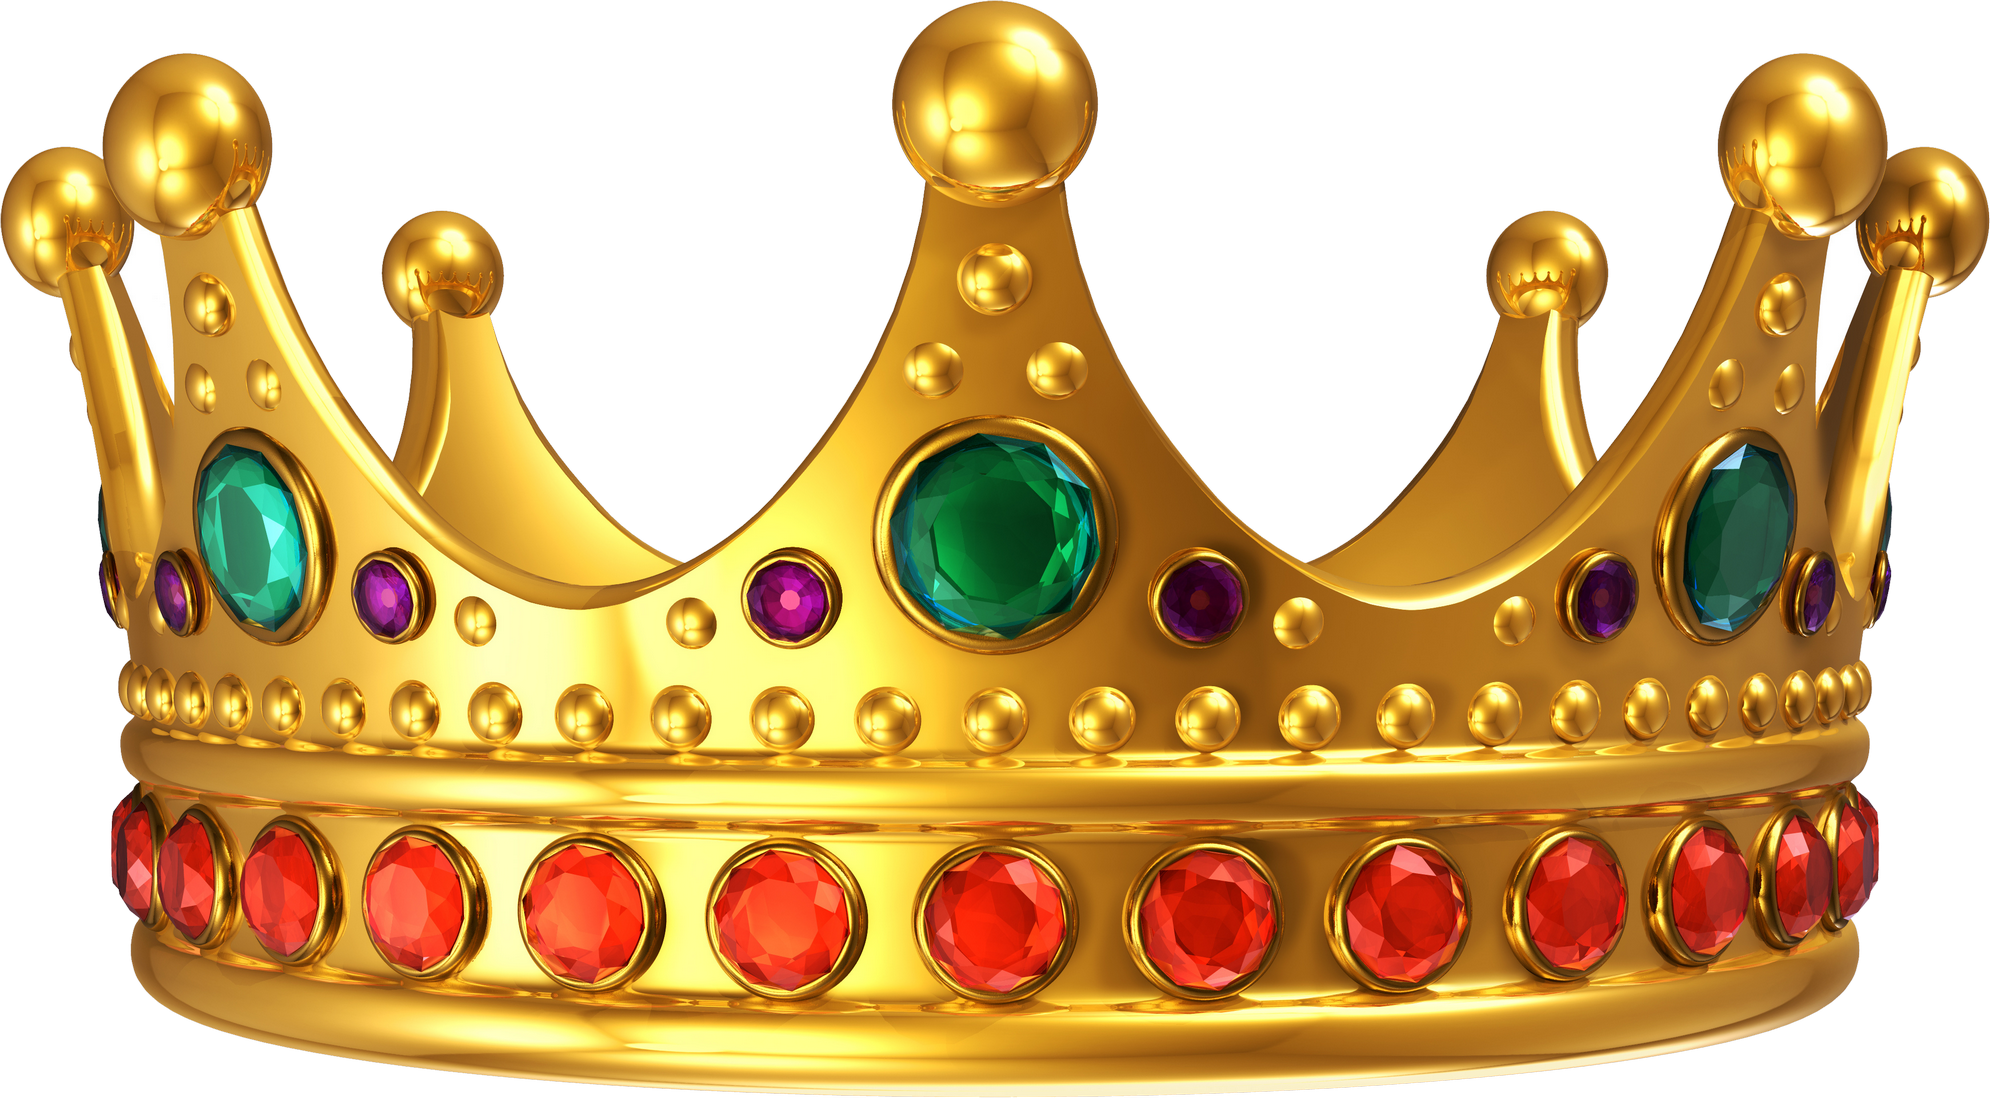 Gold Crown PNG Image Fundraising sites, Berklee college